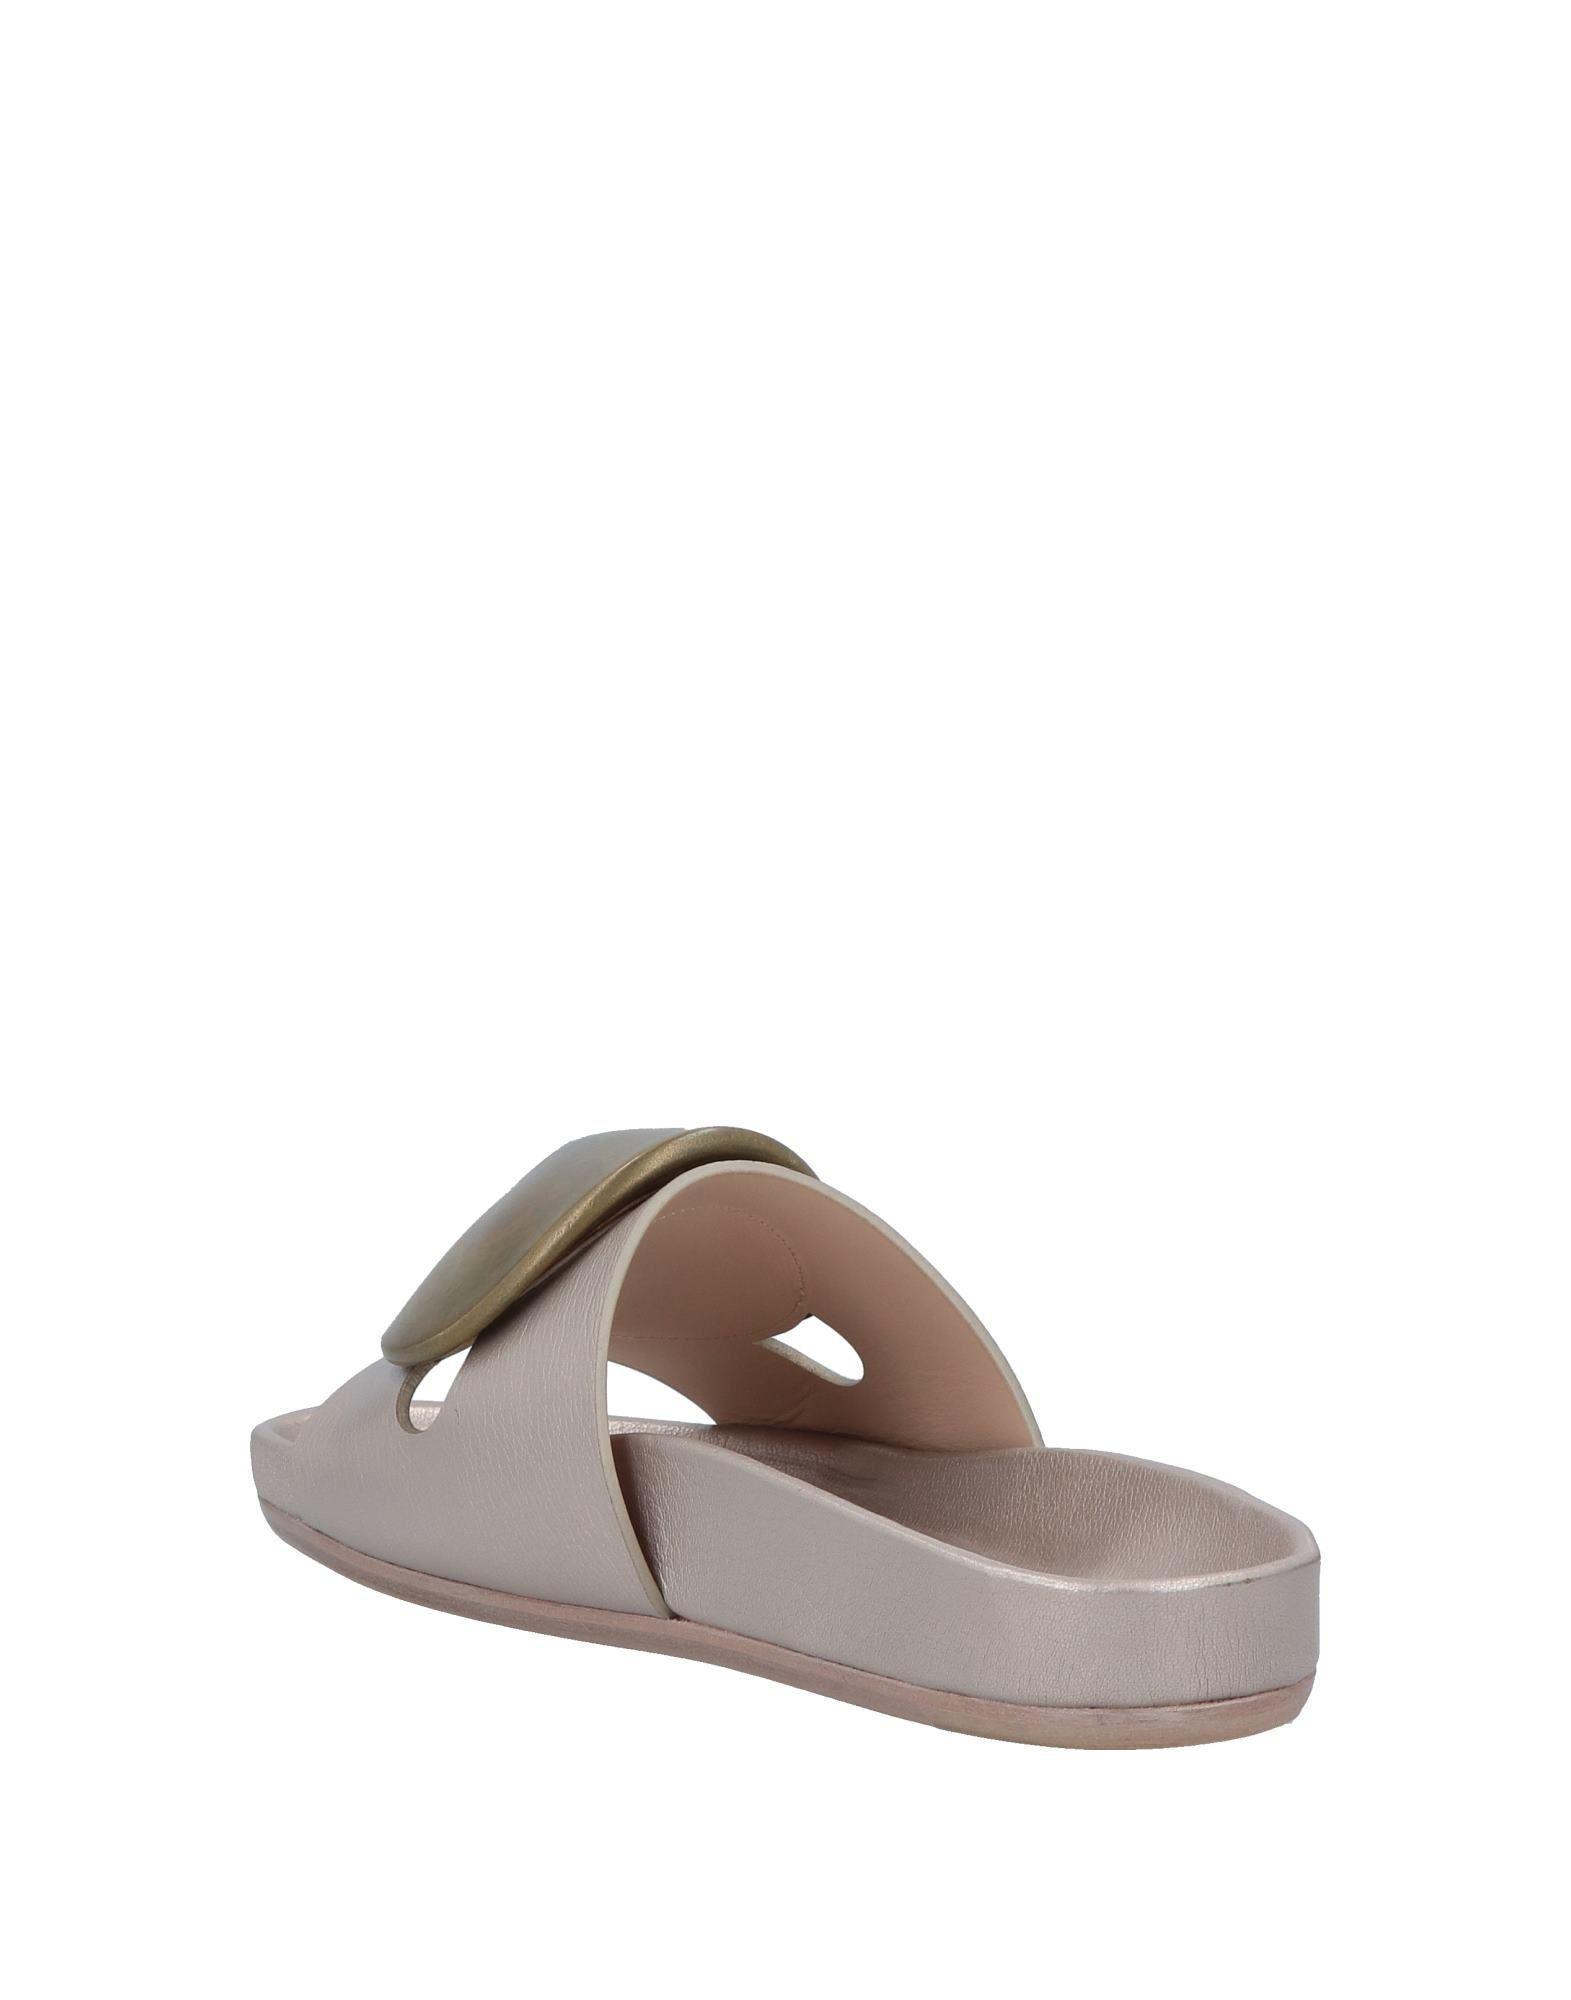 6a6f42a5f821 Lyst - Rick Owens Sandals in Gray